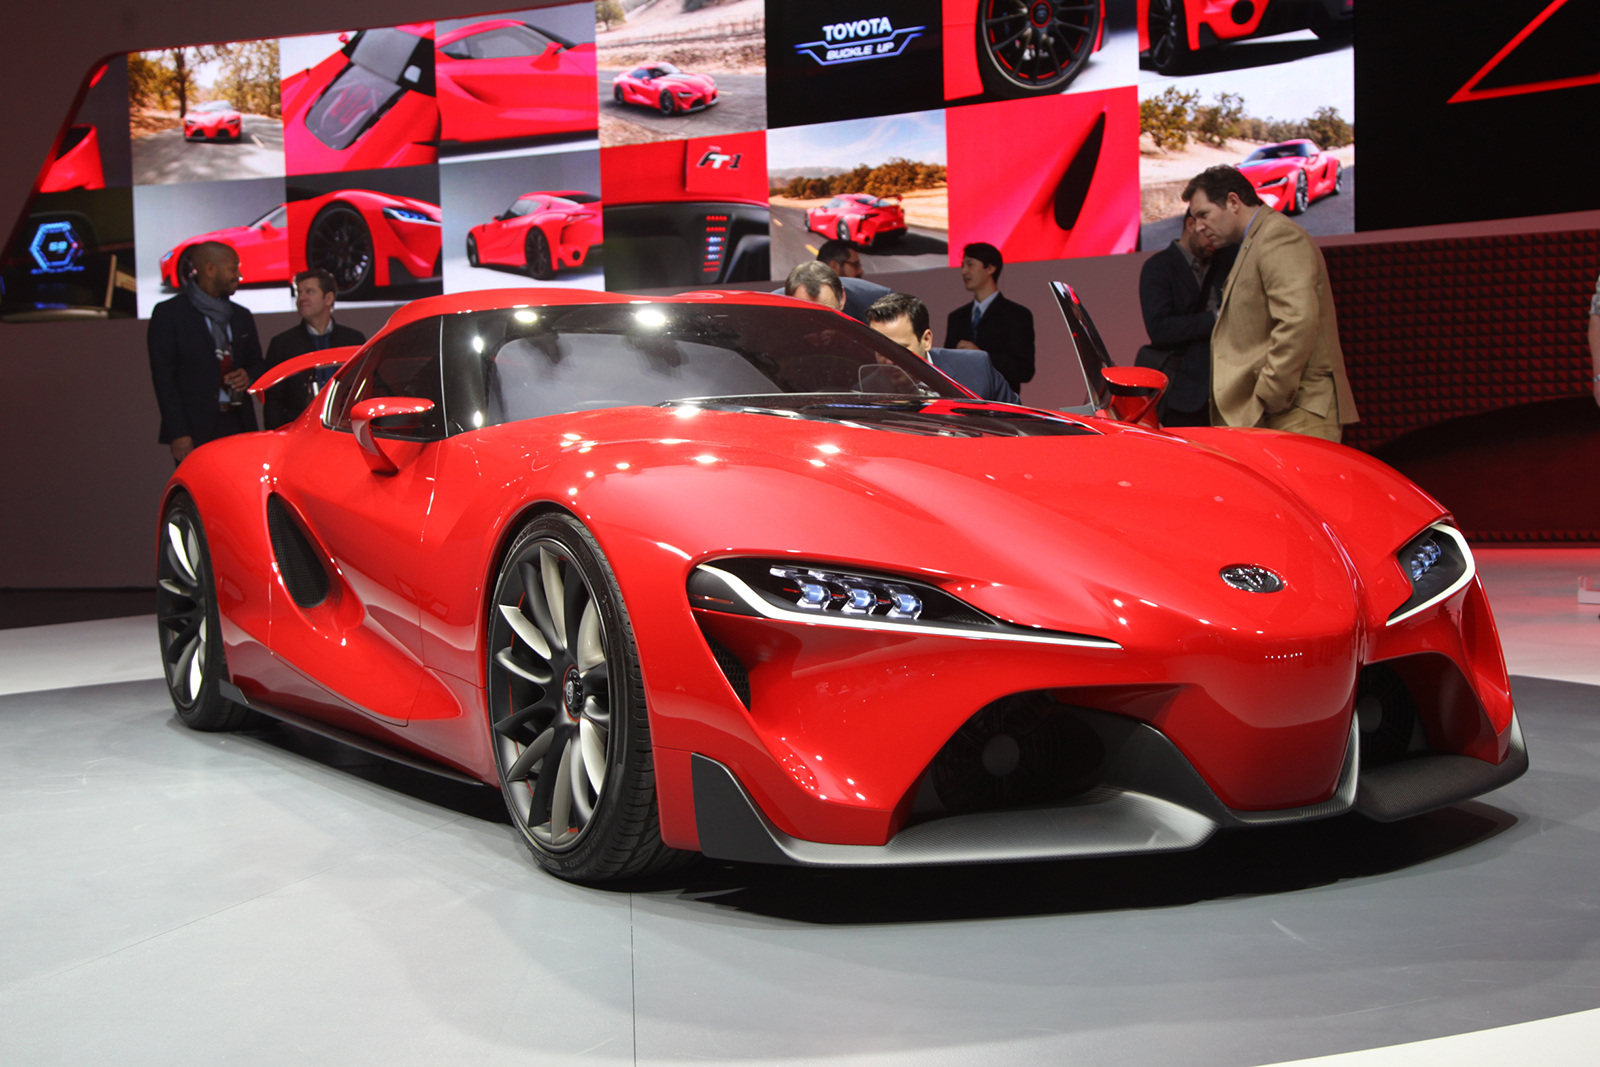 Toyota Ft 1 >> Toyota FT-1 concept unveiled in Detroit | Autocar